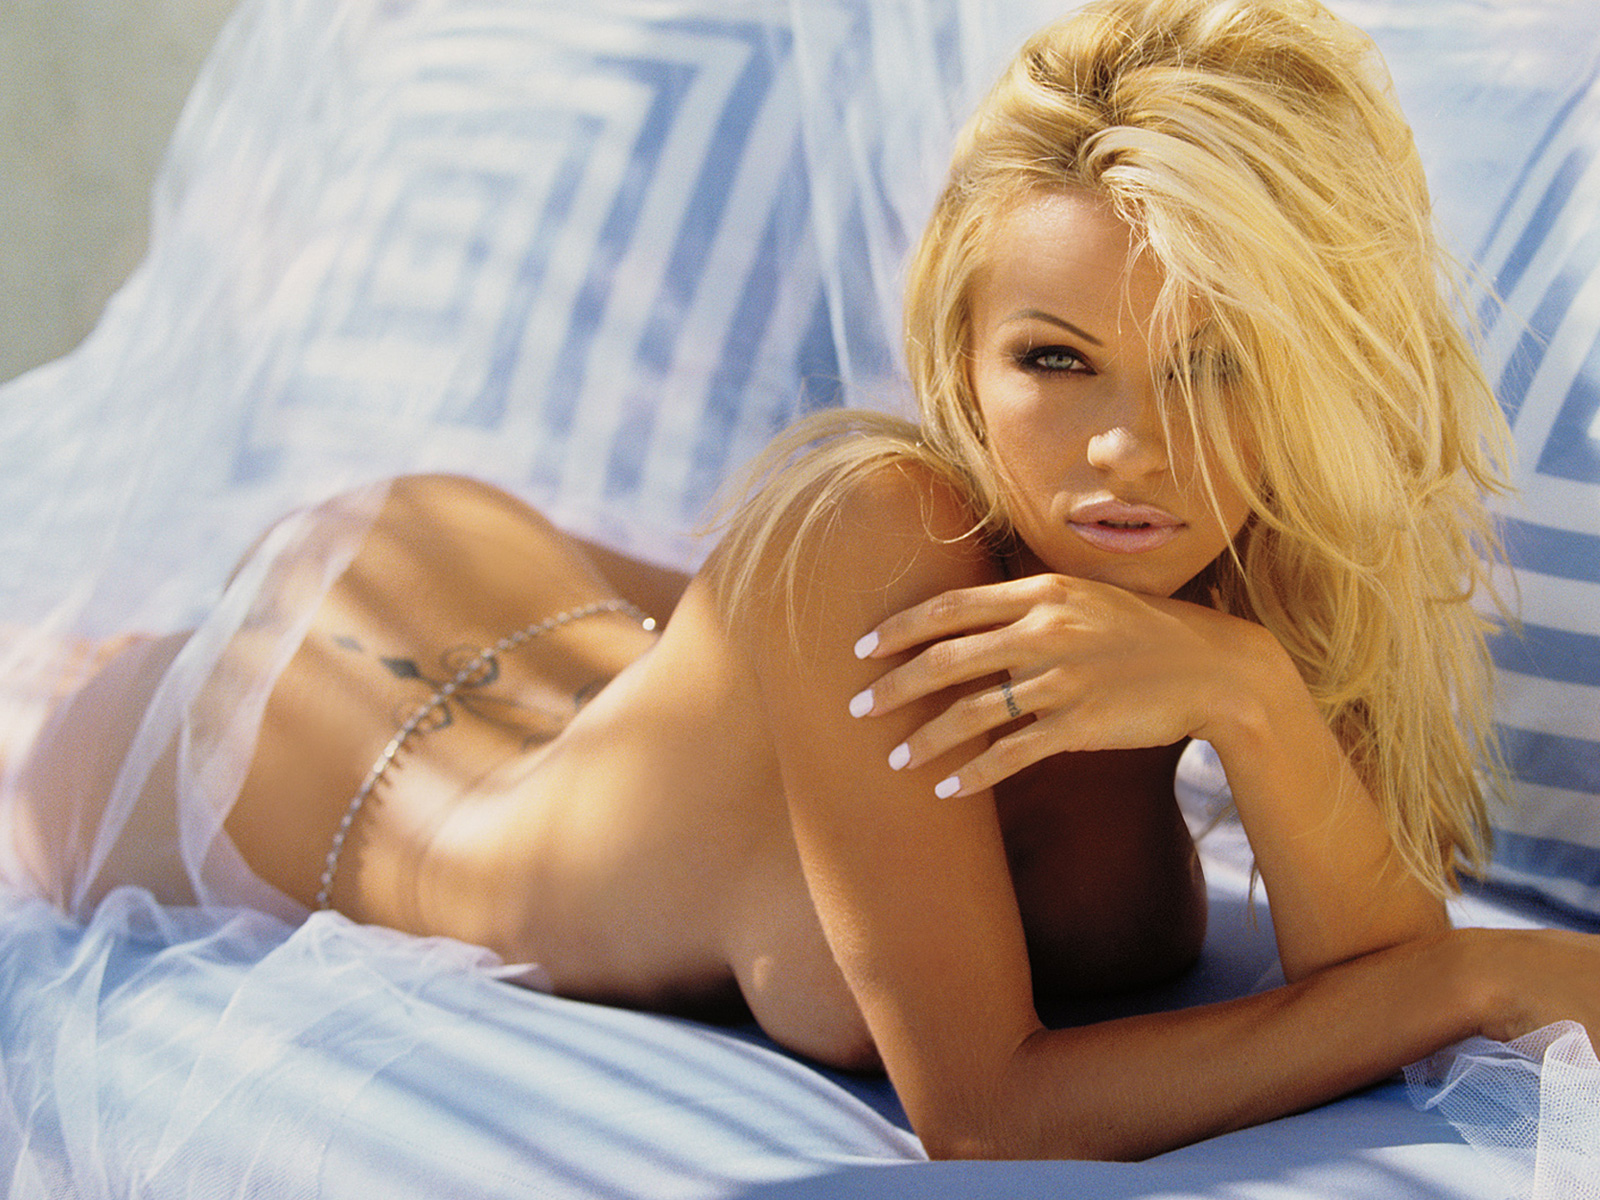 pamela anderson naked wallpaper